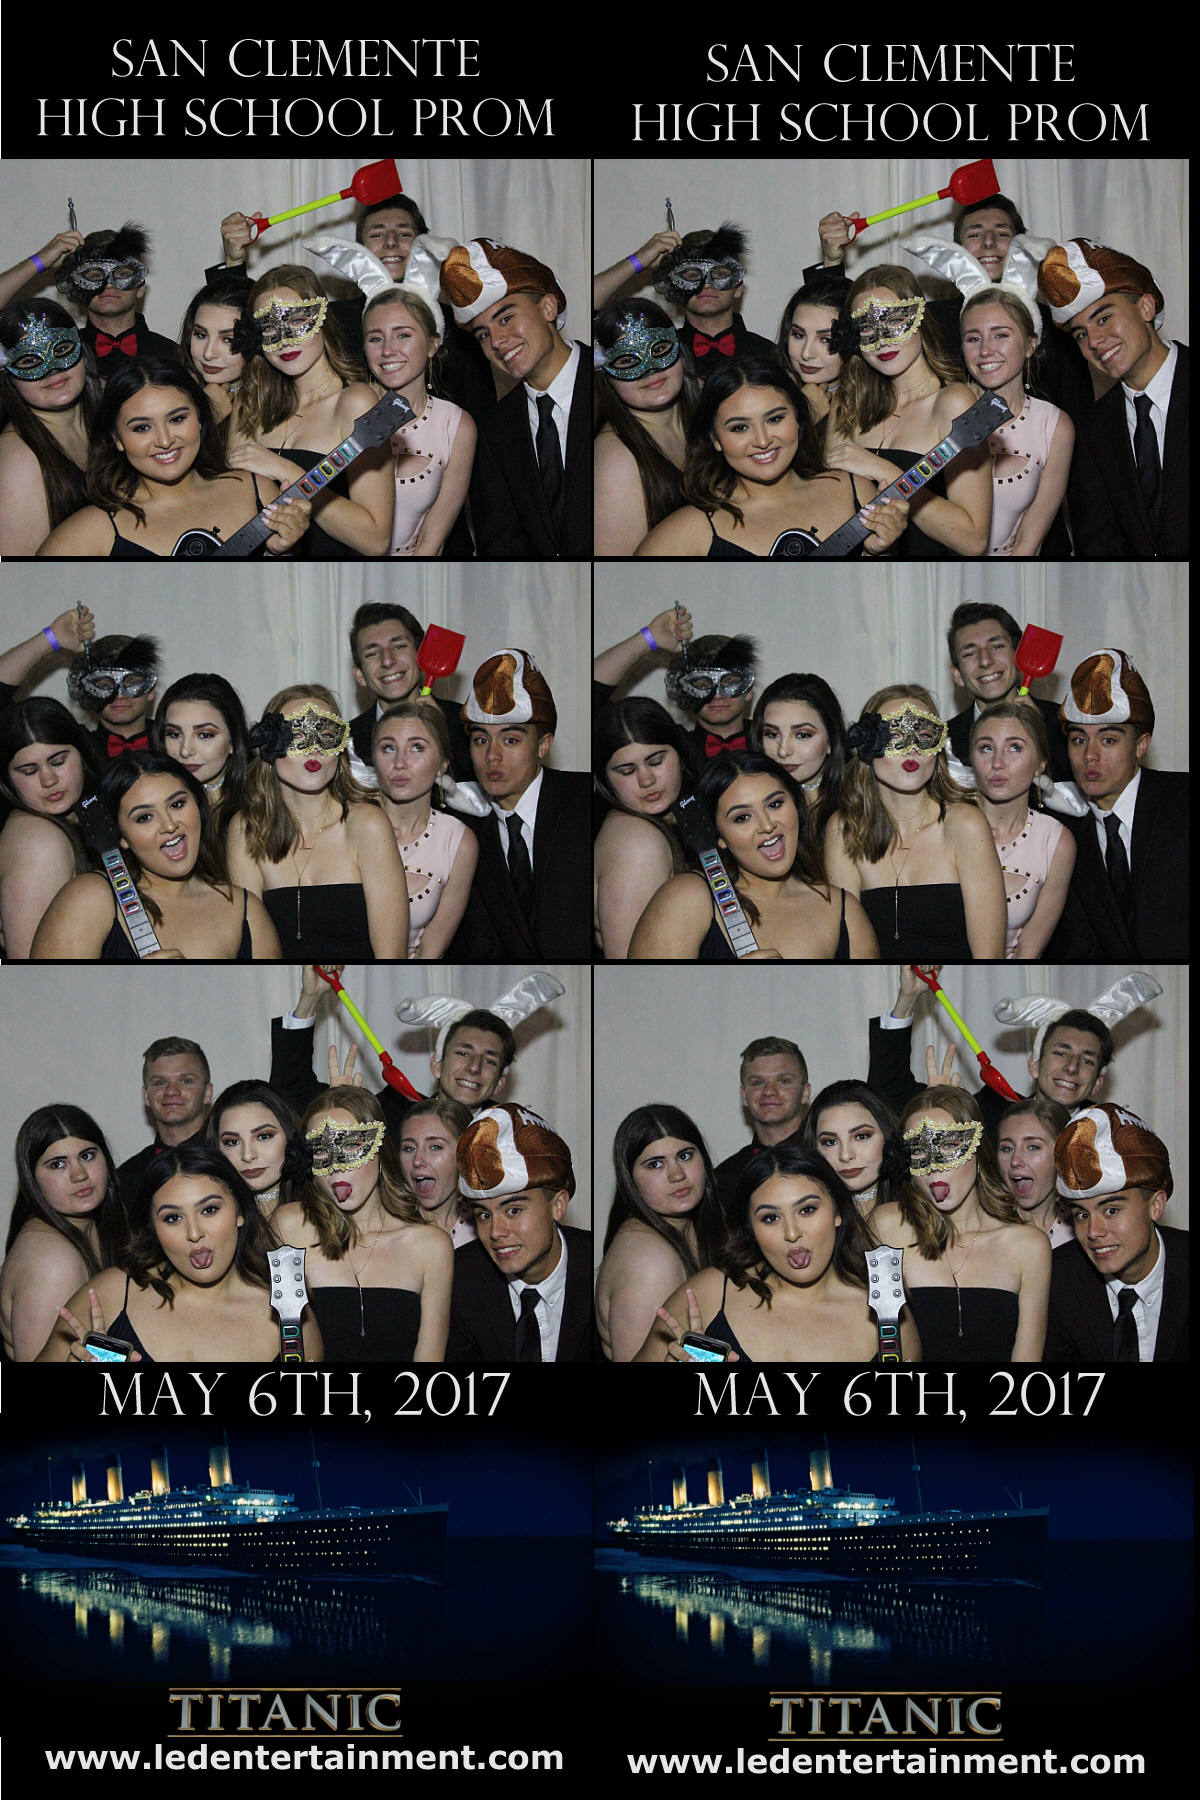 San Clemente High School Prom